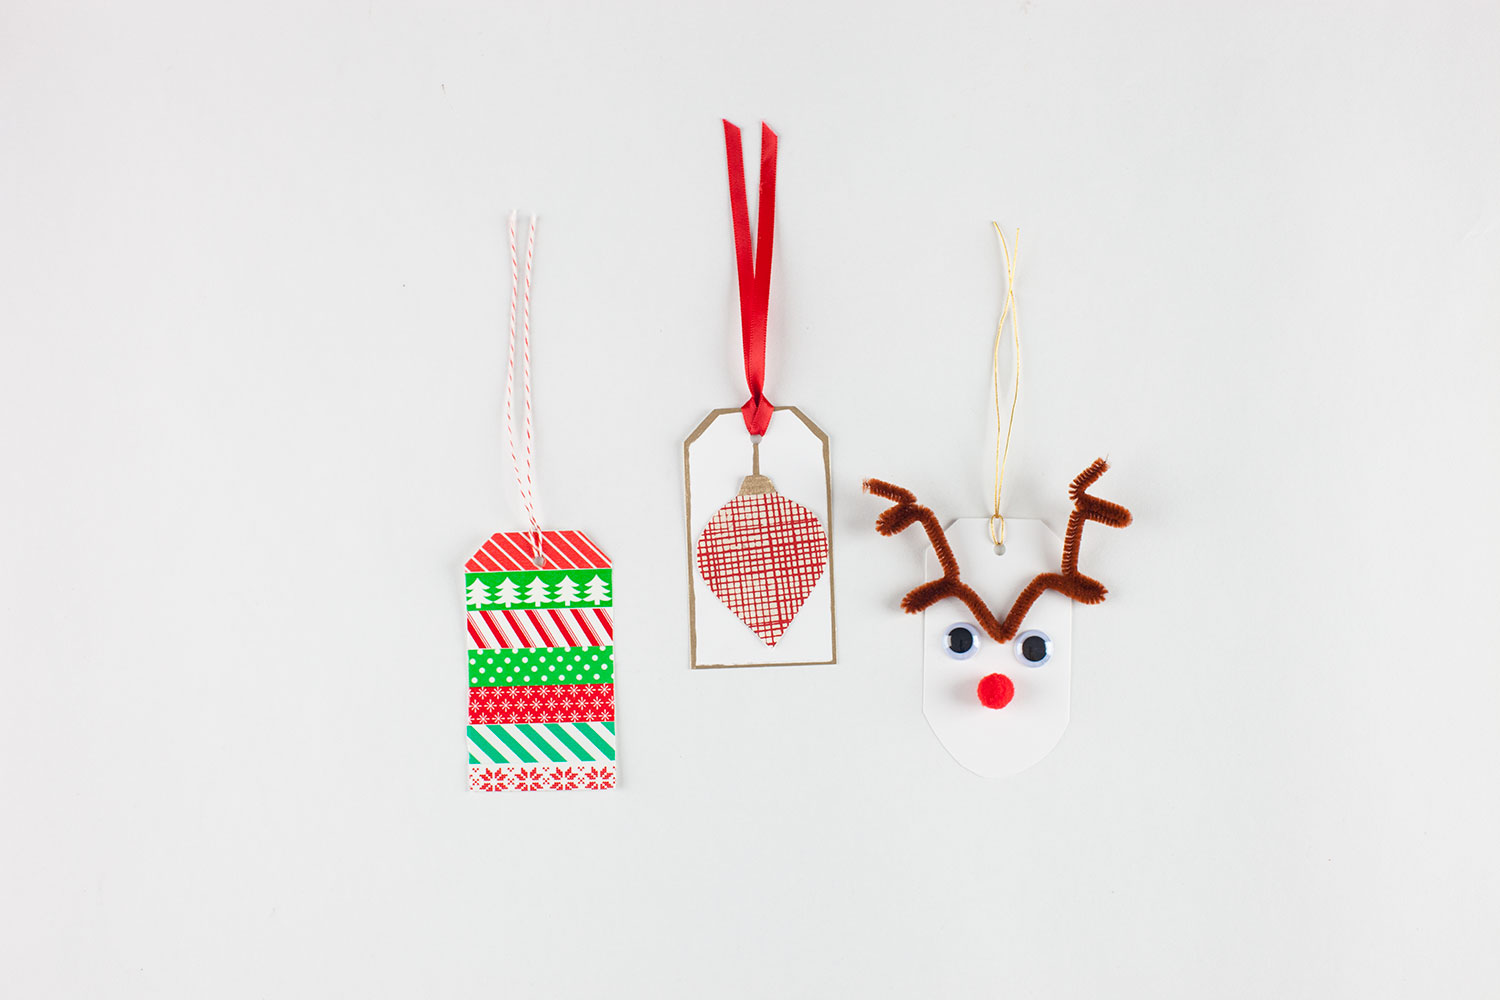 Crazy christmas party gift exchange ideas